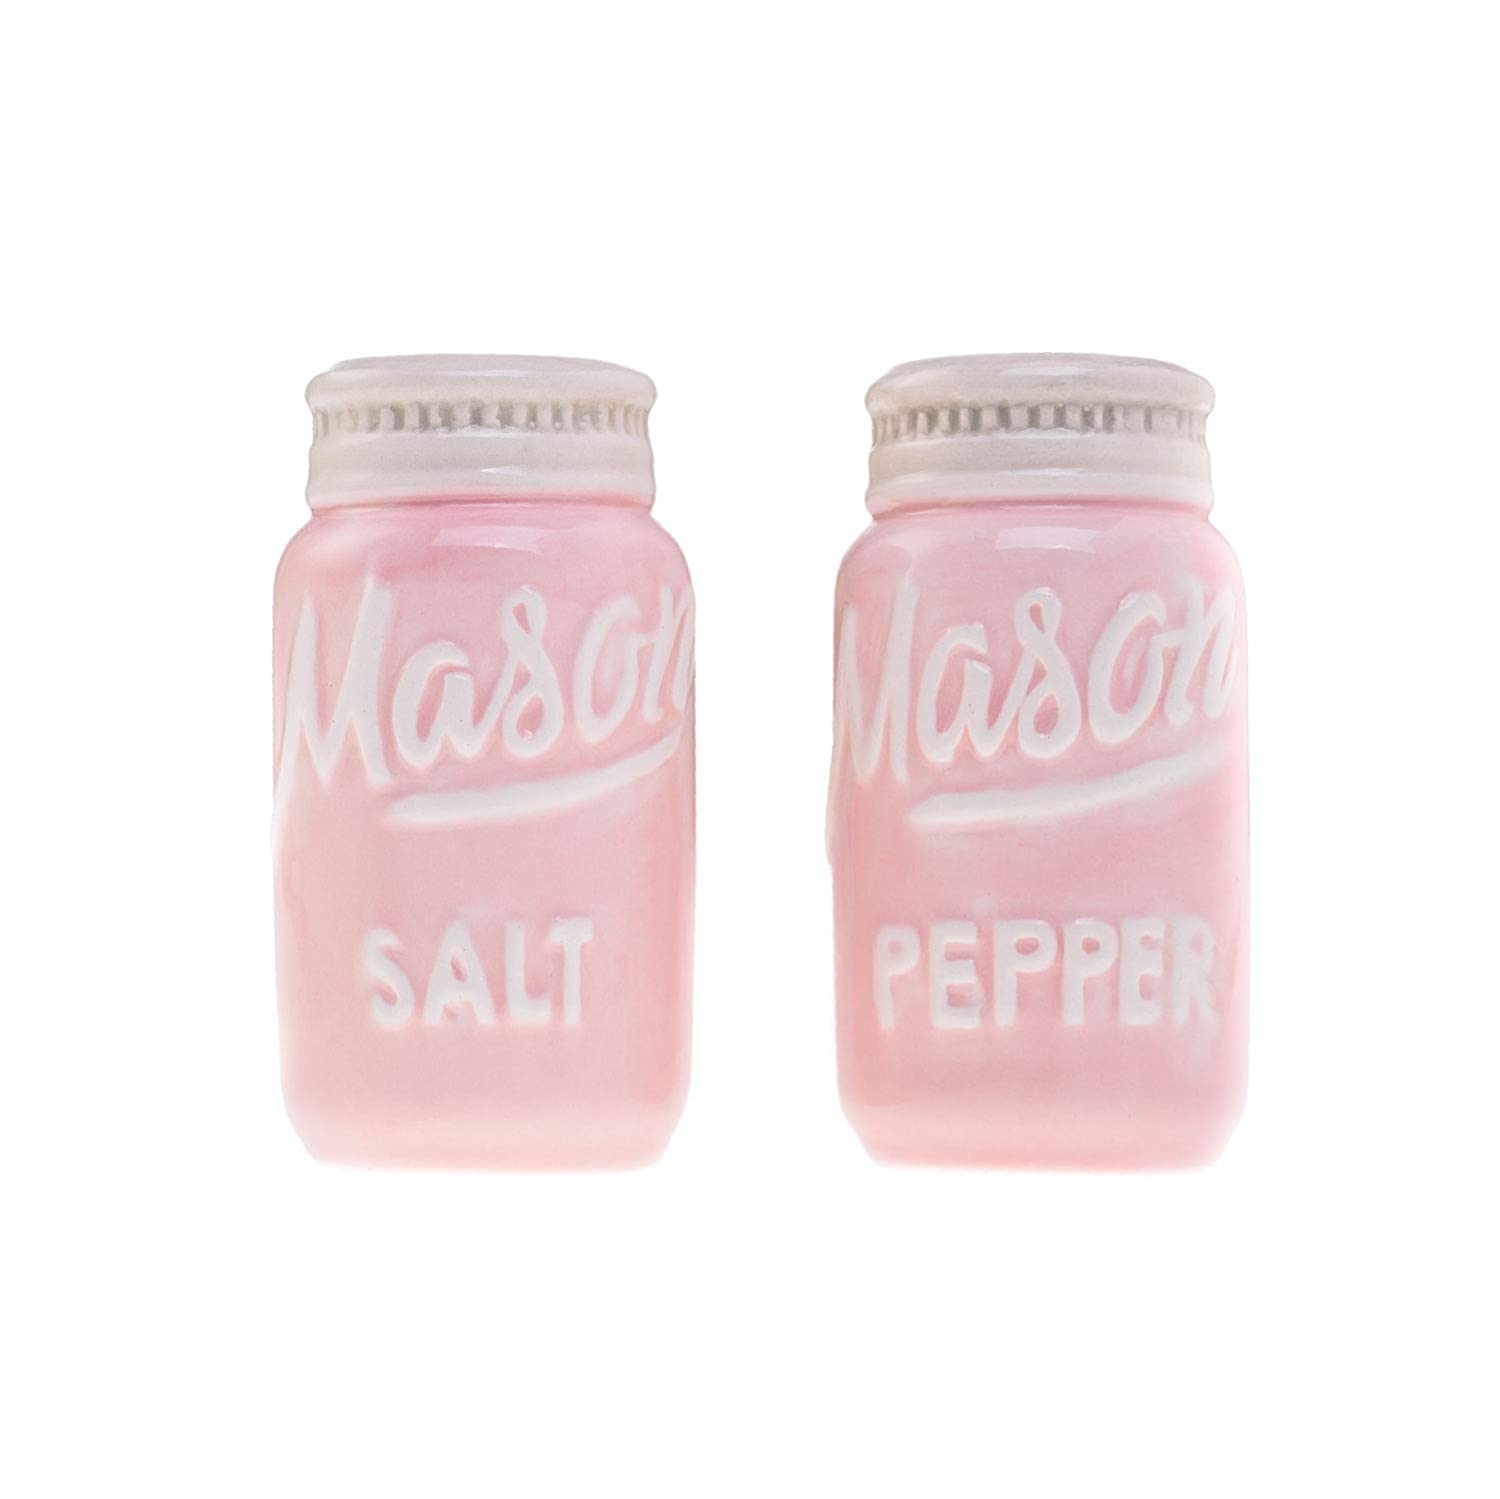 Pink Mason Jar Salt & Pepper Shakers - Kitchen Ceramic Shakers   Retro & Farmhouse Decor   Dishwasher & Microwave Safe   Set of 2   Baking Supplies  Rustic Home Accessory & Gifts by Goodscious